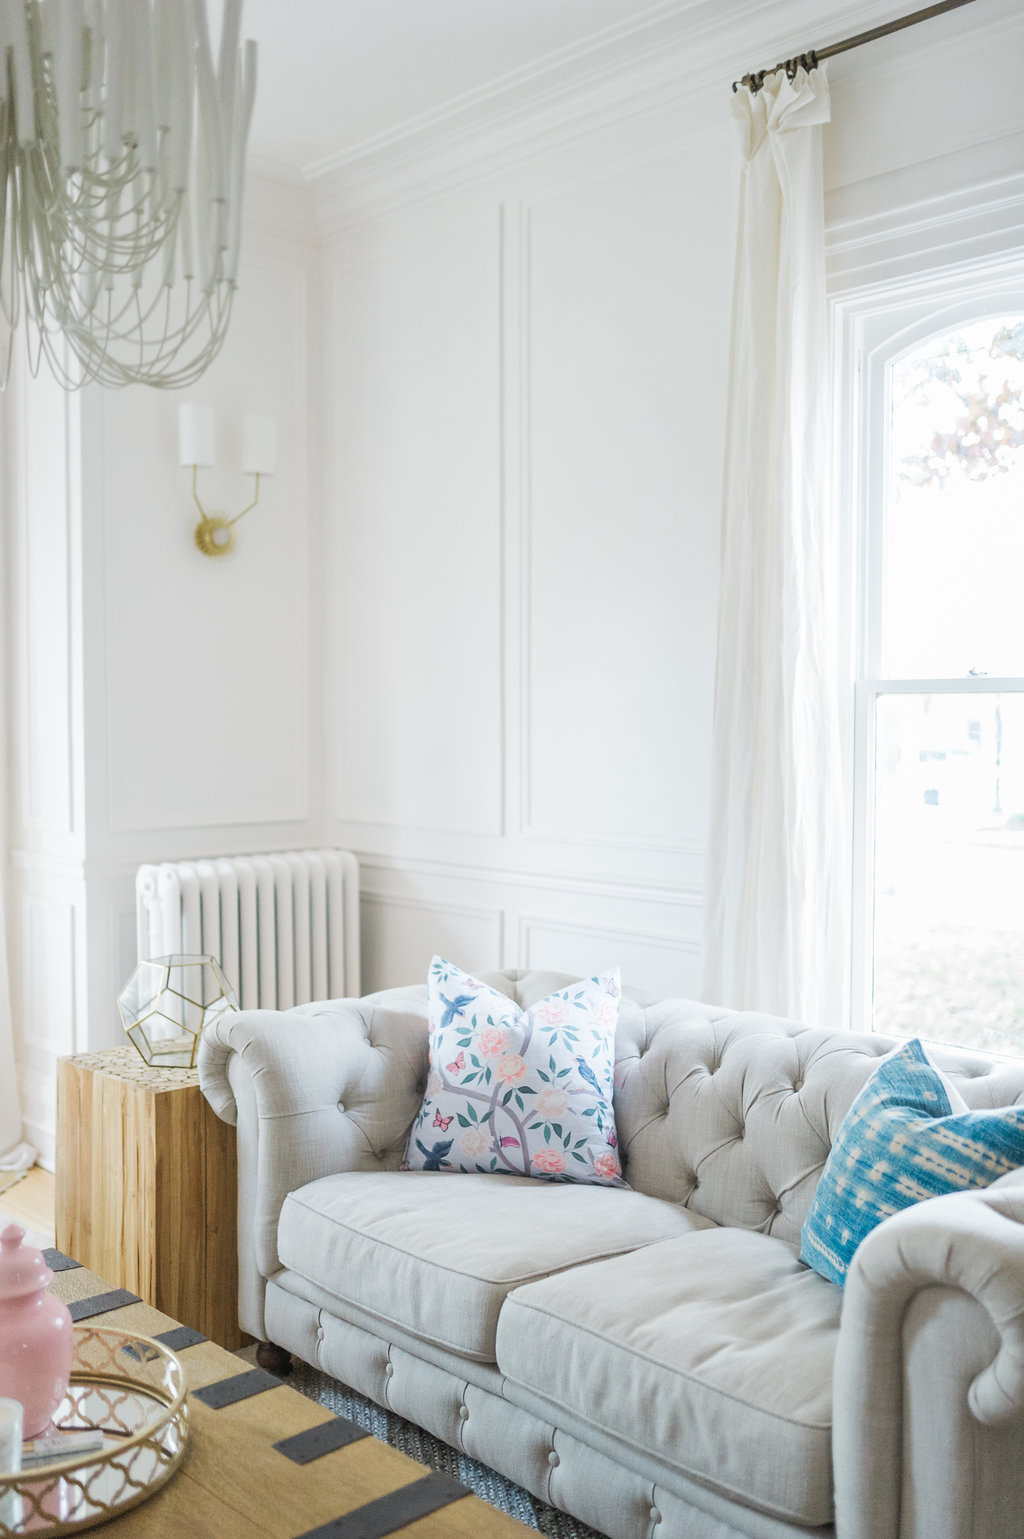 4 DIY Ceiling Ideas to Add Breathtaking Drama to Your Space - The ...